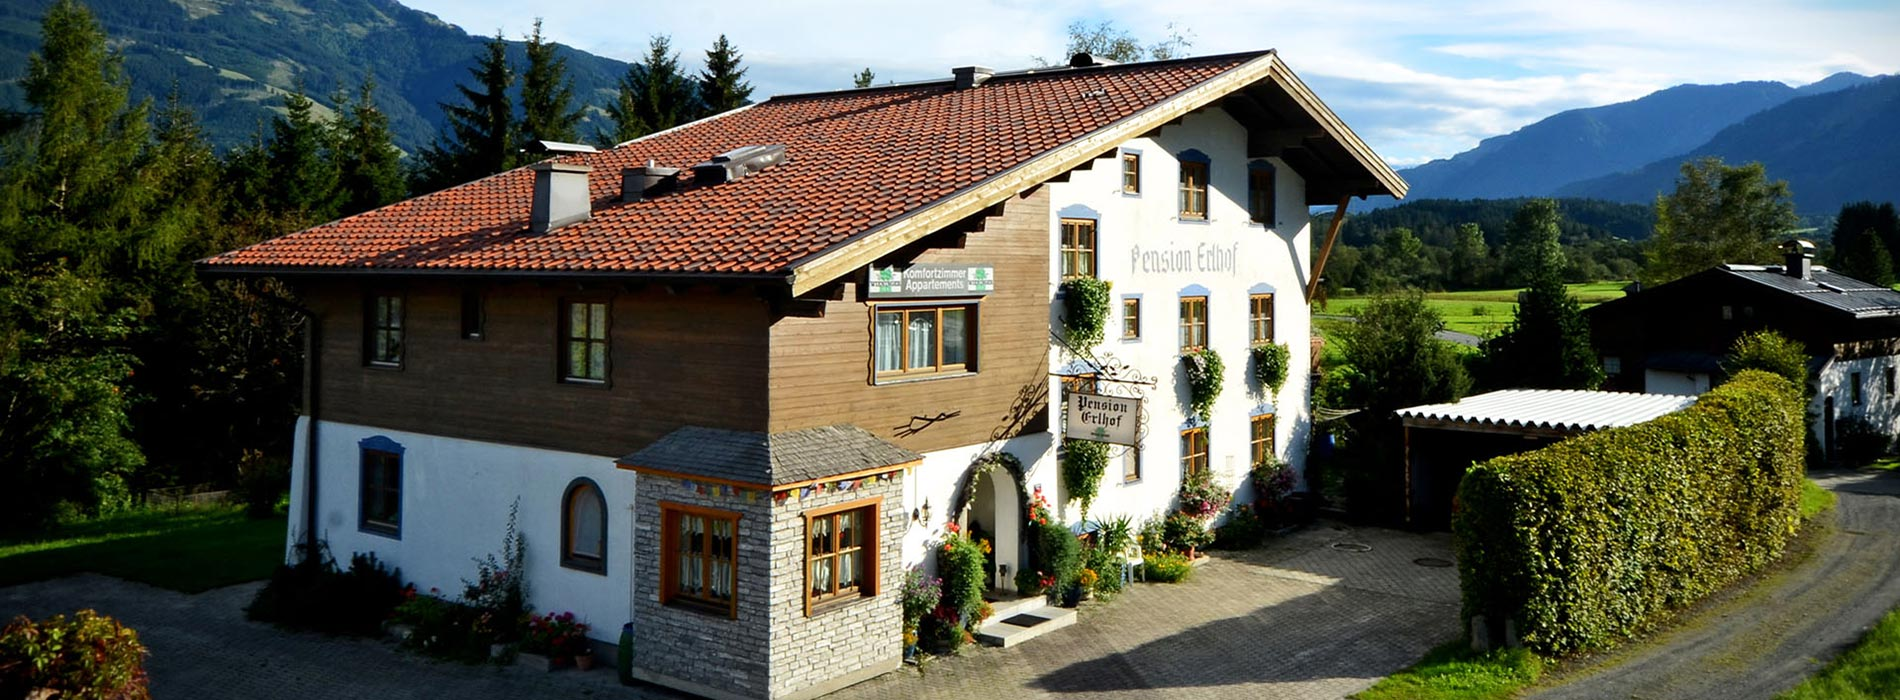 Ihre Pension in Saalfelden